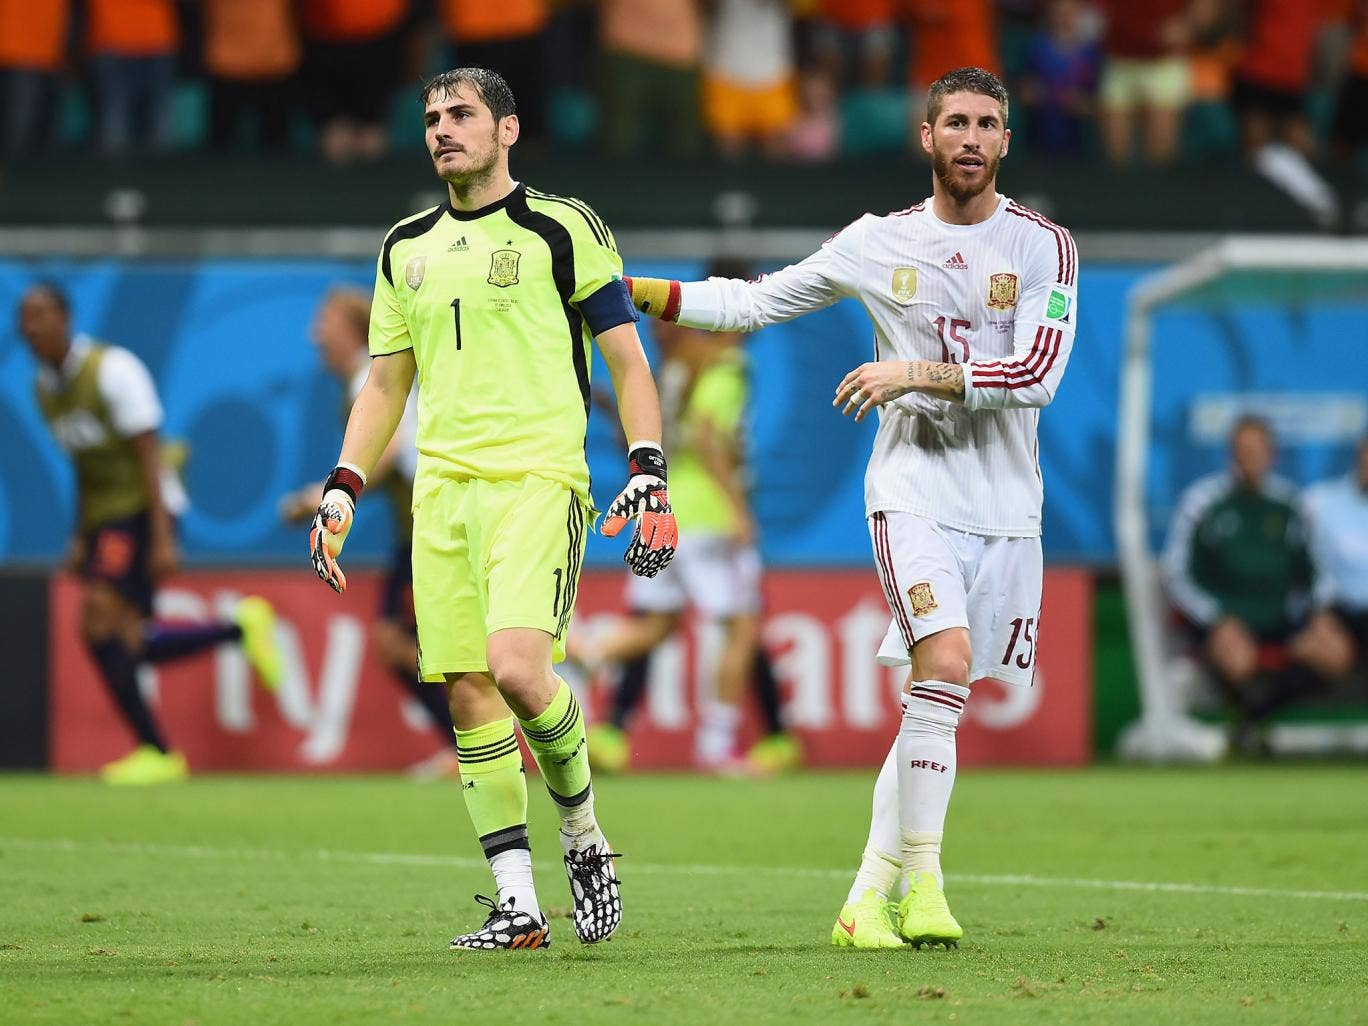 Iker Casillas is consoled by Sergio Ramos after conceding in the 5-1 defeat to the Netherlands